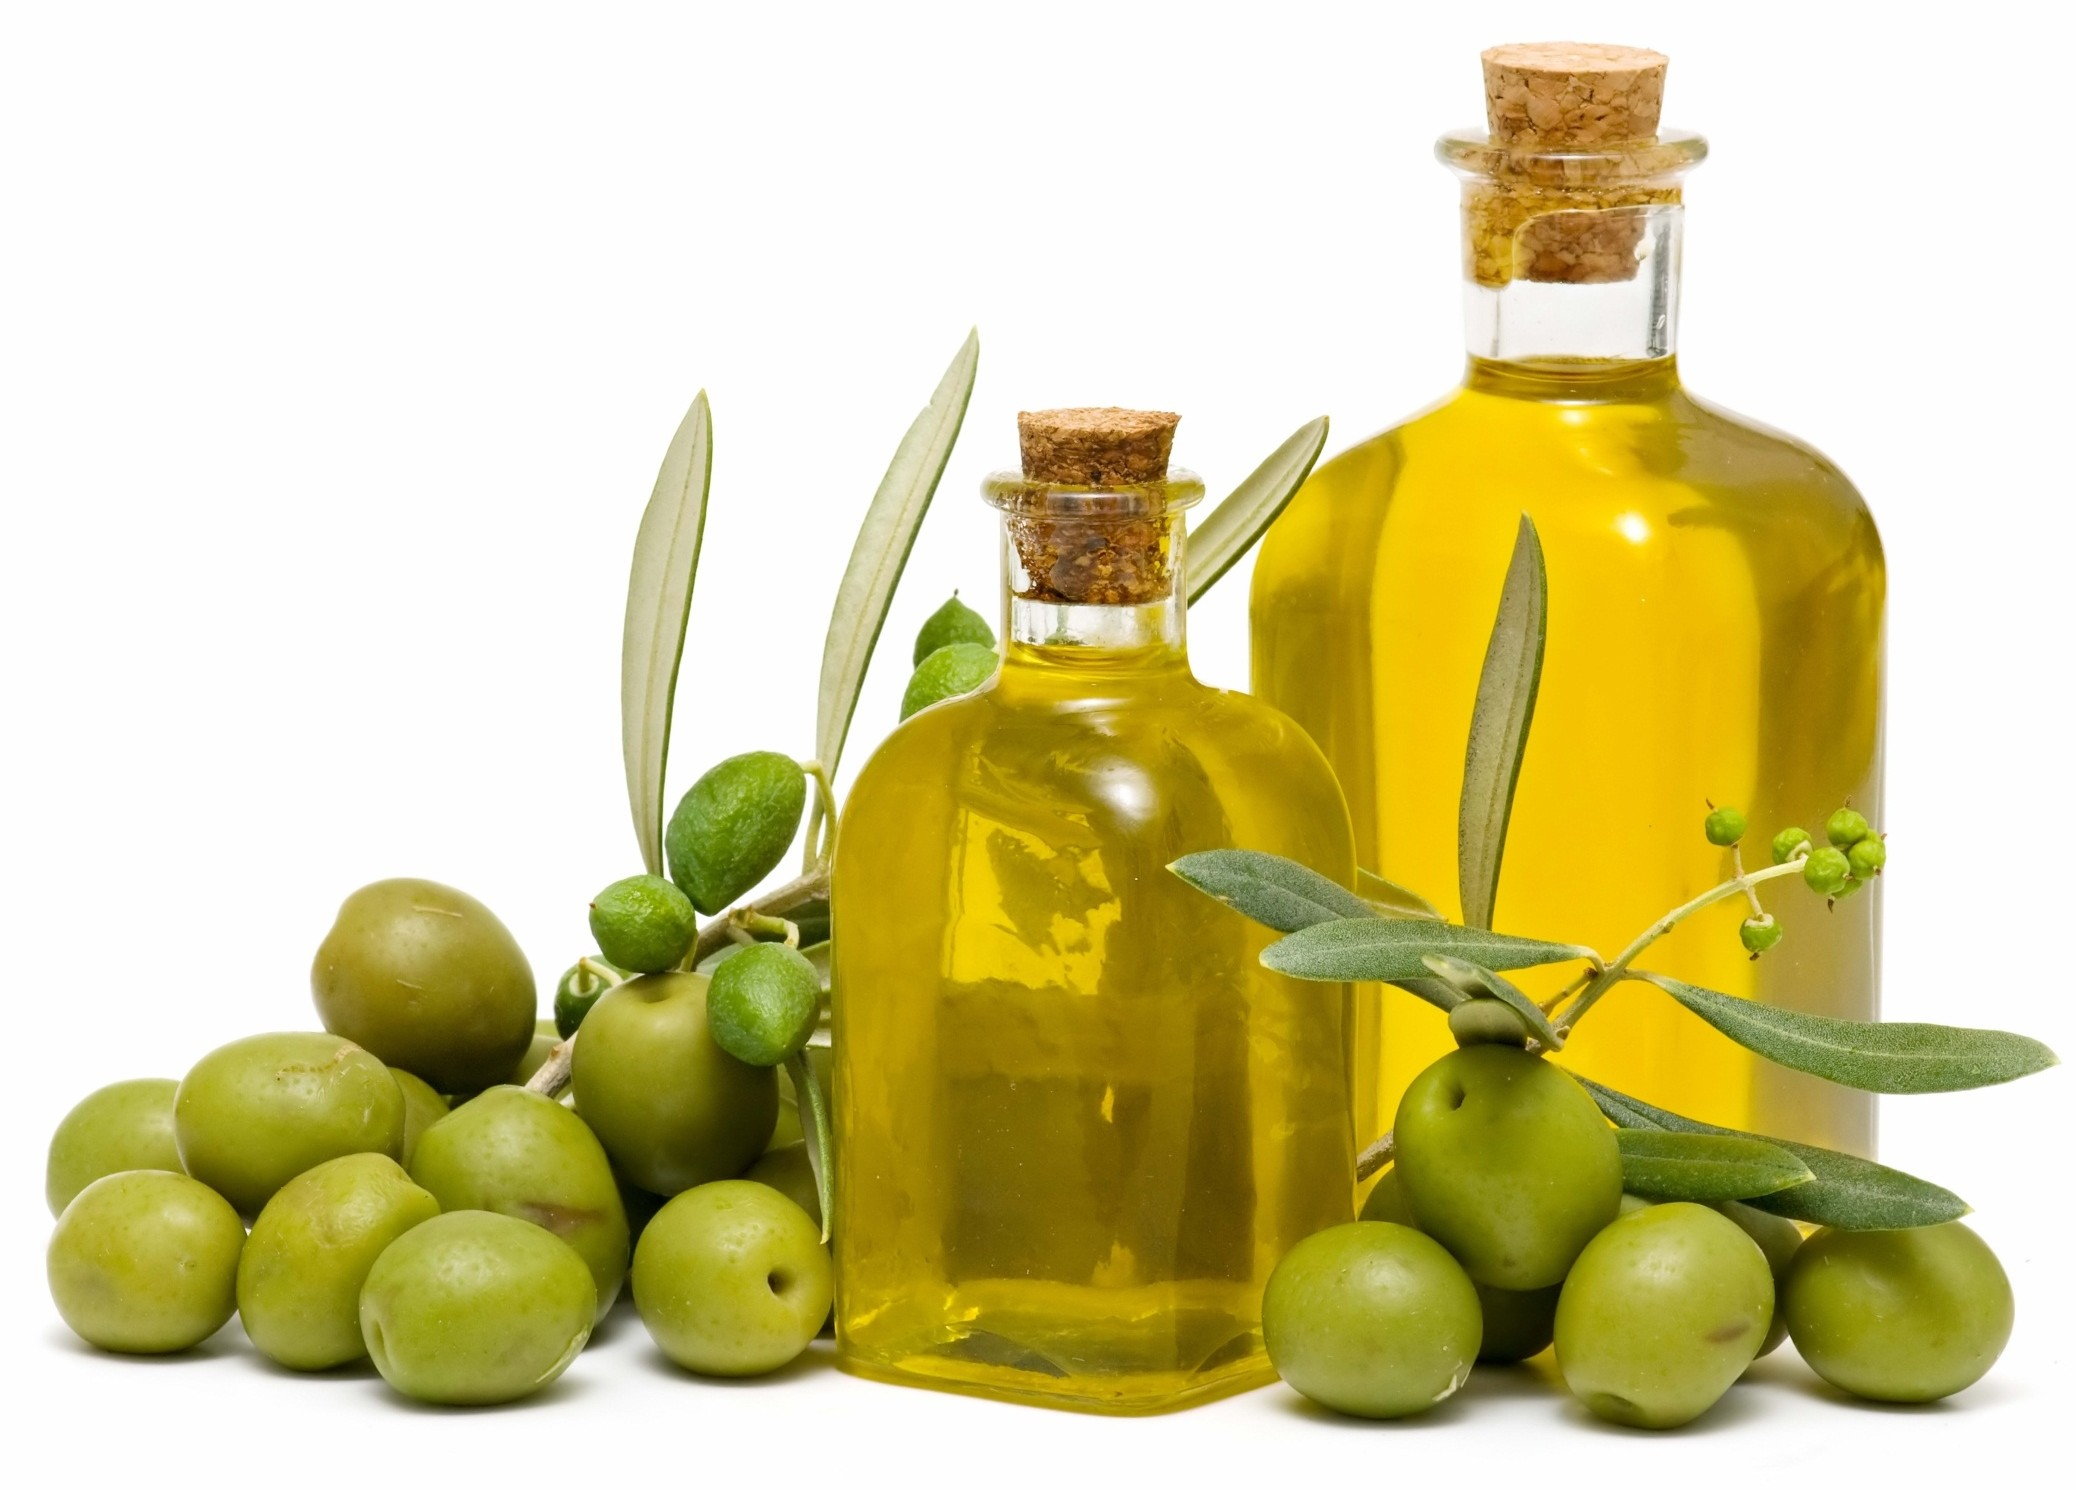 HUILES D'OLIVE MAROCAINES